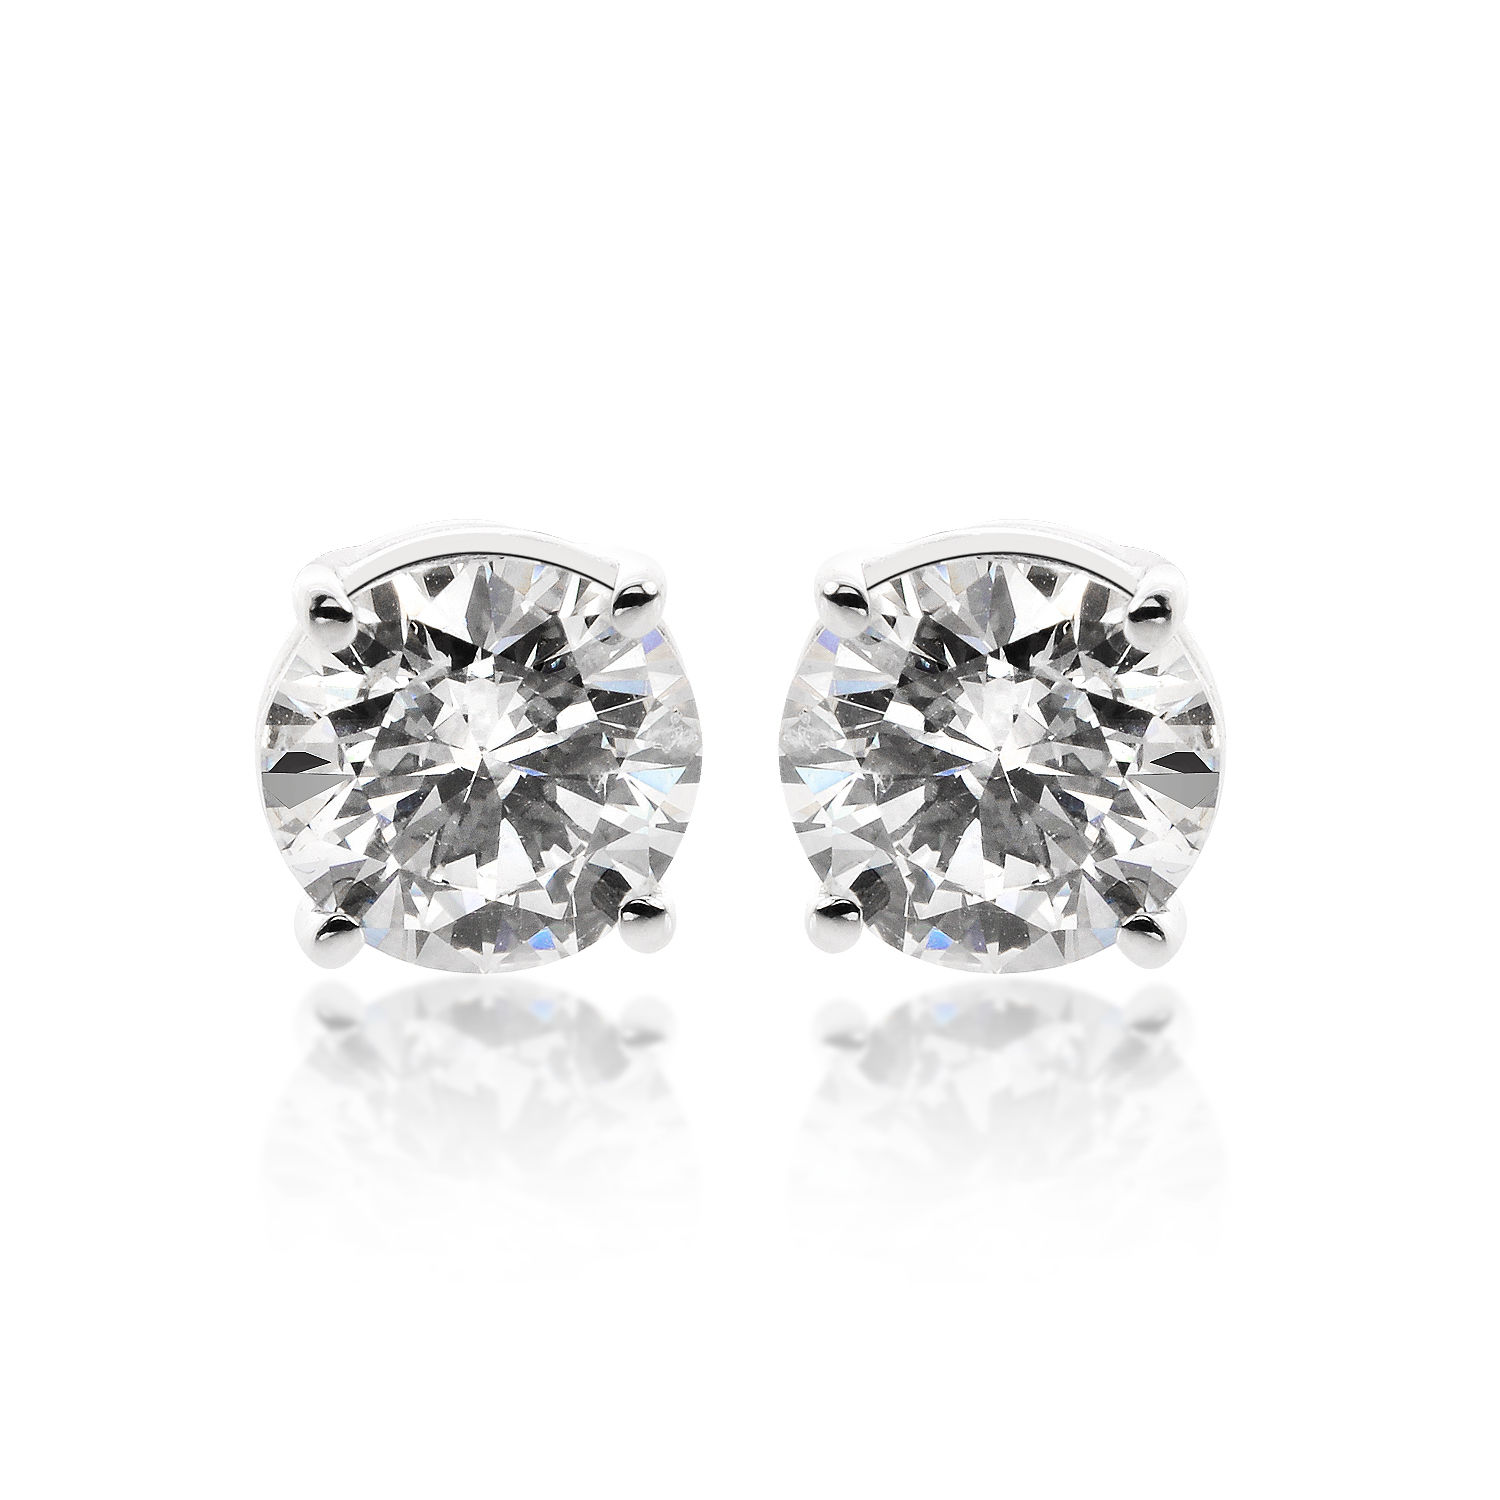 "Image of ""14K White Gold 2.05ct. Round Brilliant Cut Diamond Stud Earrings"""